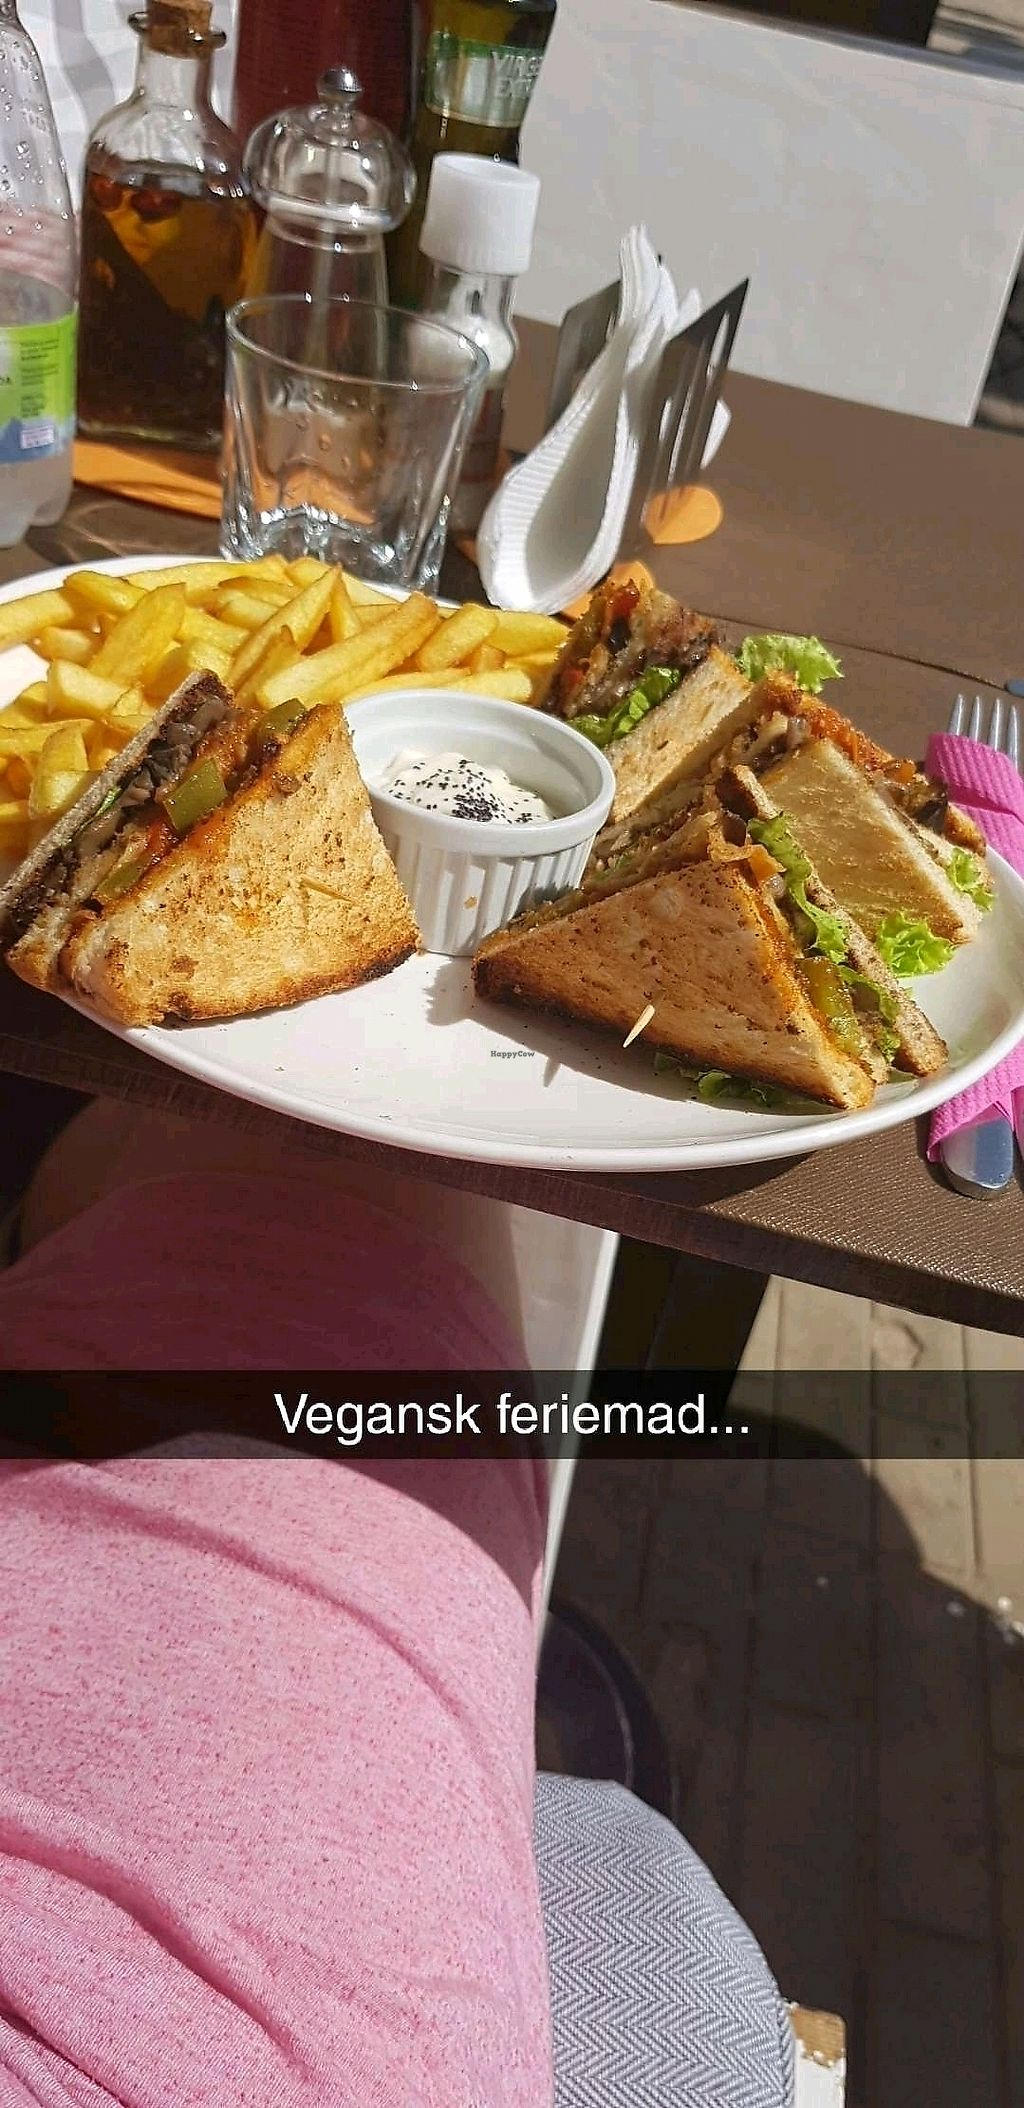 """Photo of By Valeria  by <a href=""""/members/profile/AnnikaHN"""">AnnikaHN</a> <br/>Vegan club sandwich <br/> January 11, 2018  - <a href='/contact/abuse/image/84967/345432'>Report</a>"""